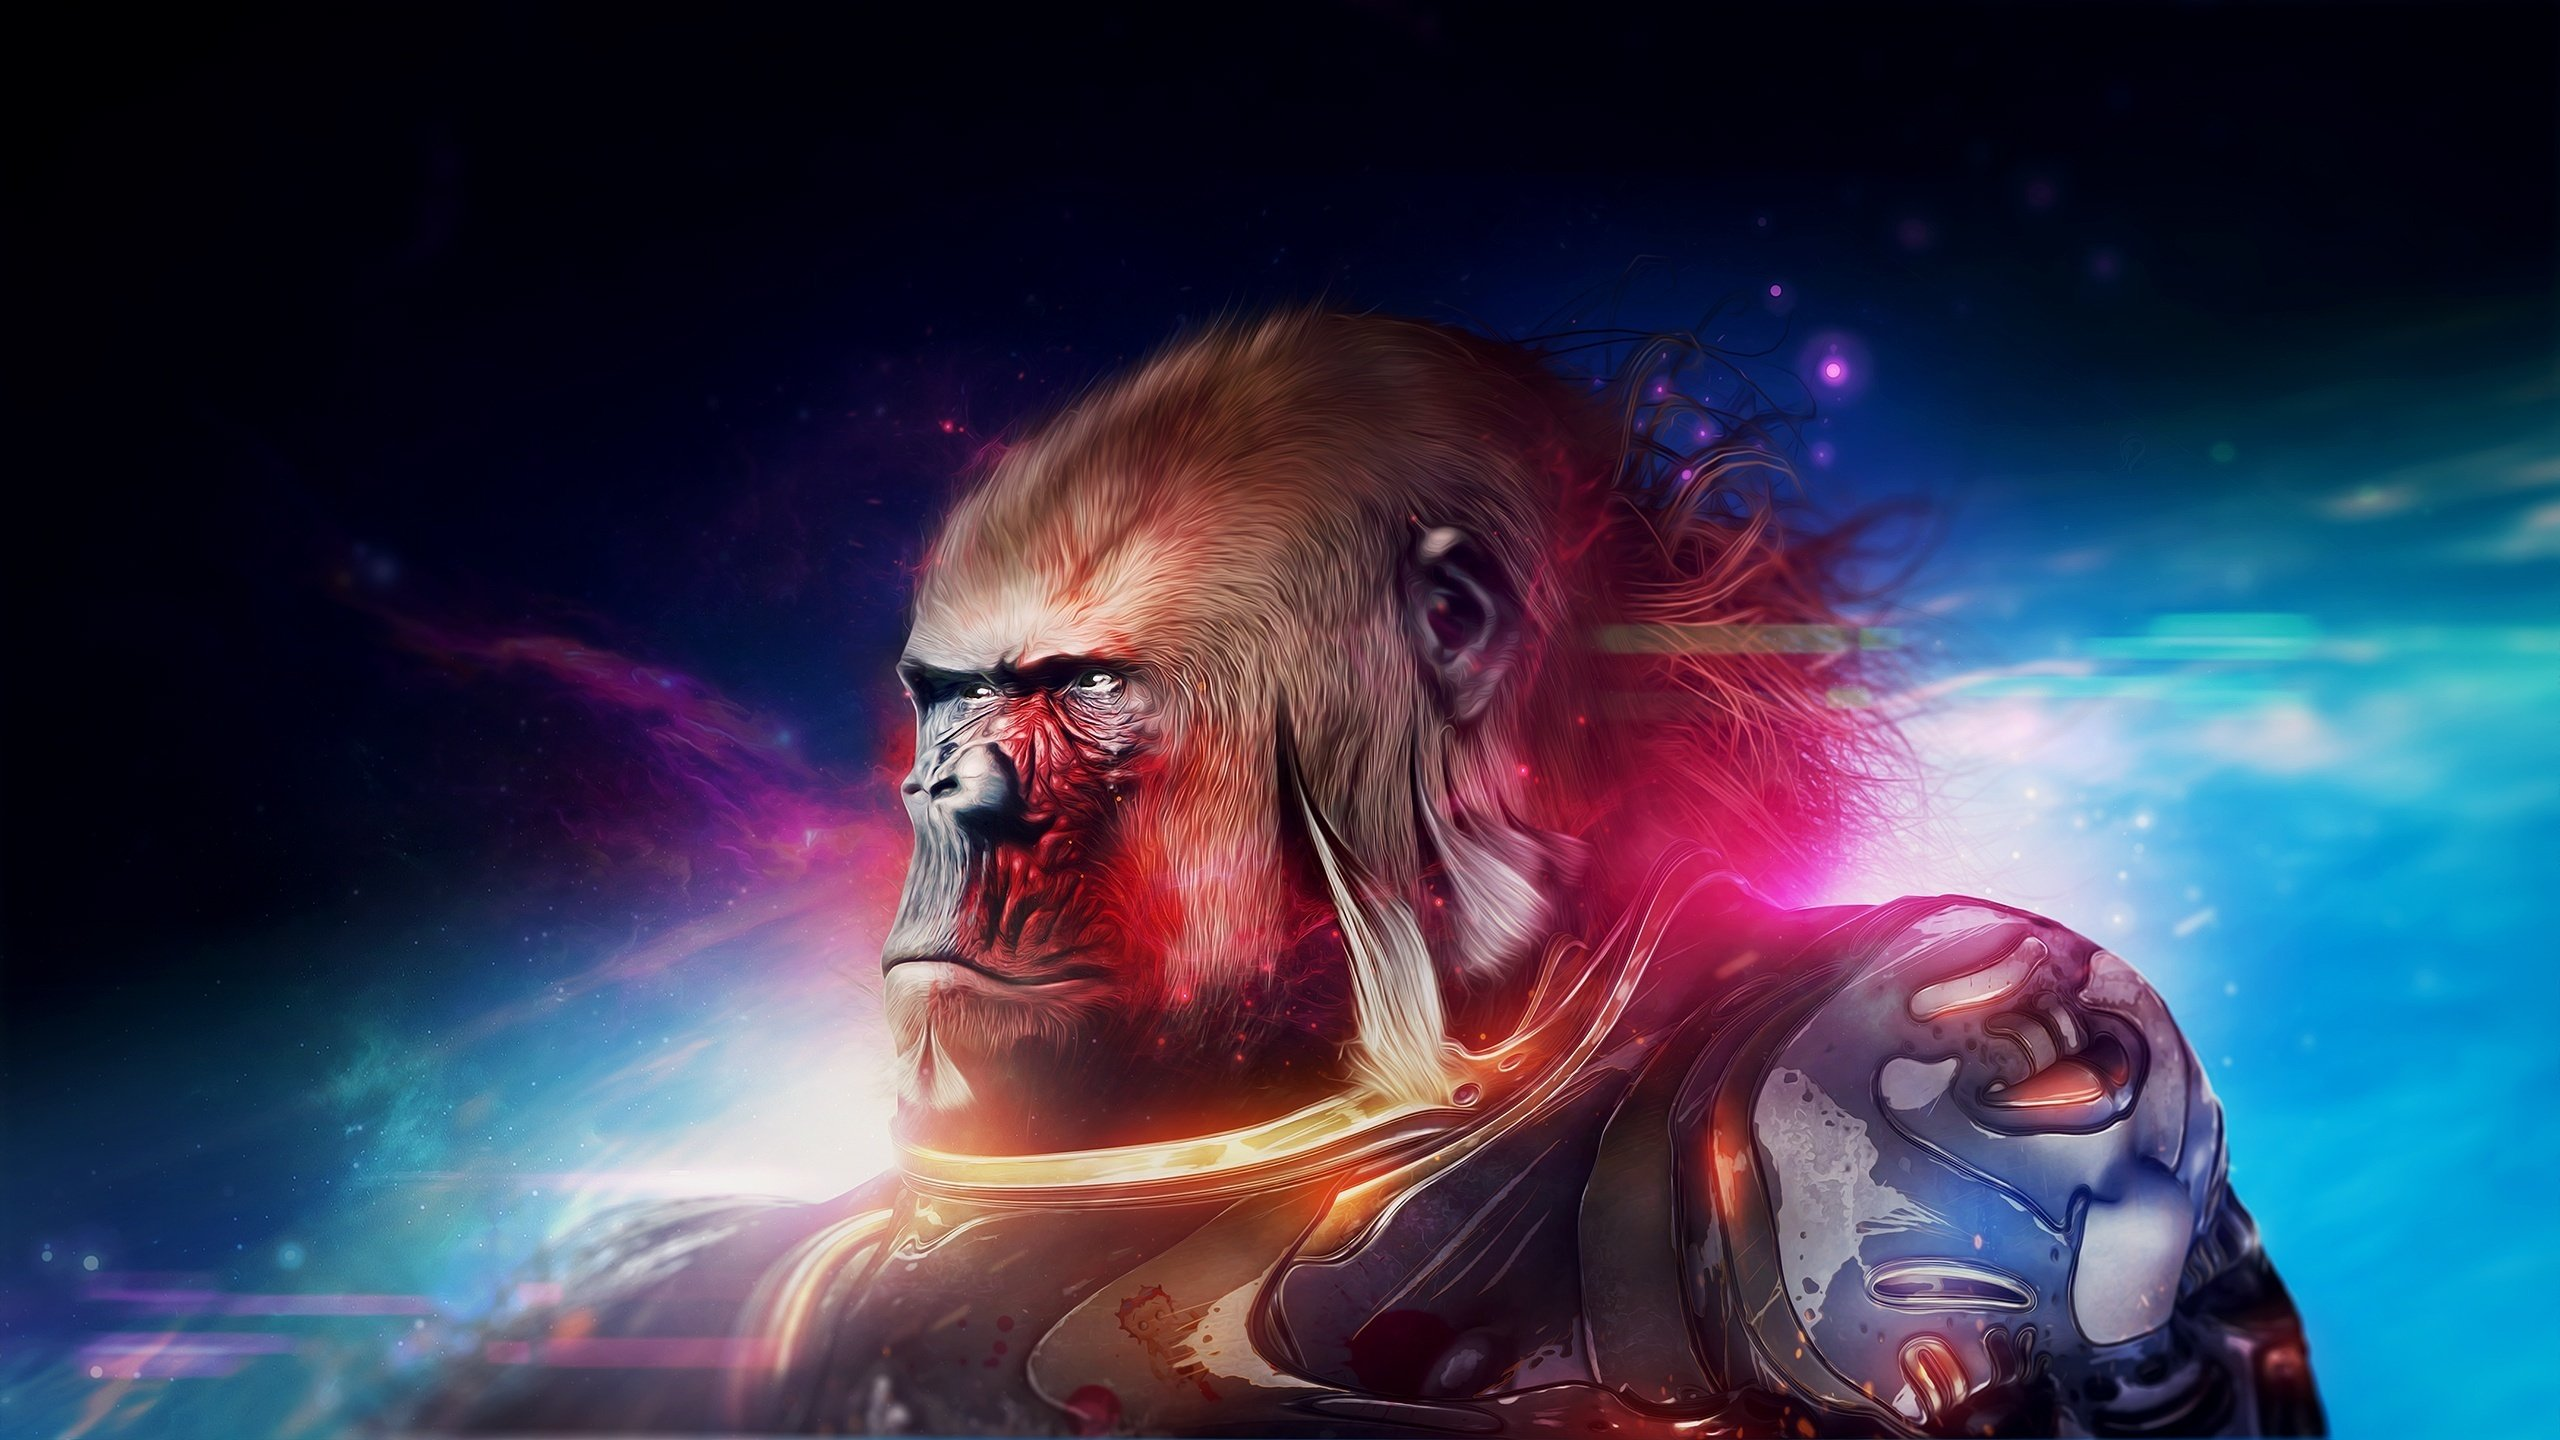 Monkey Warrior Fantasy planet apesw movie film gorilla wallpaper 2560x1440